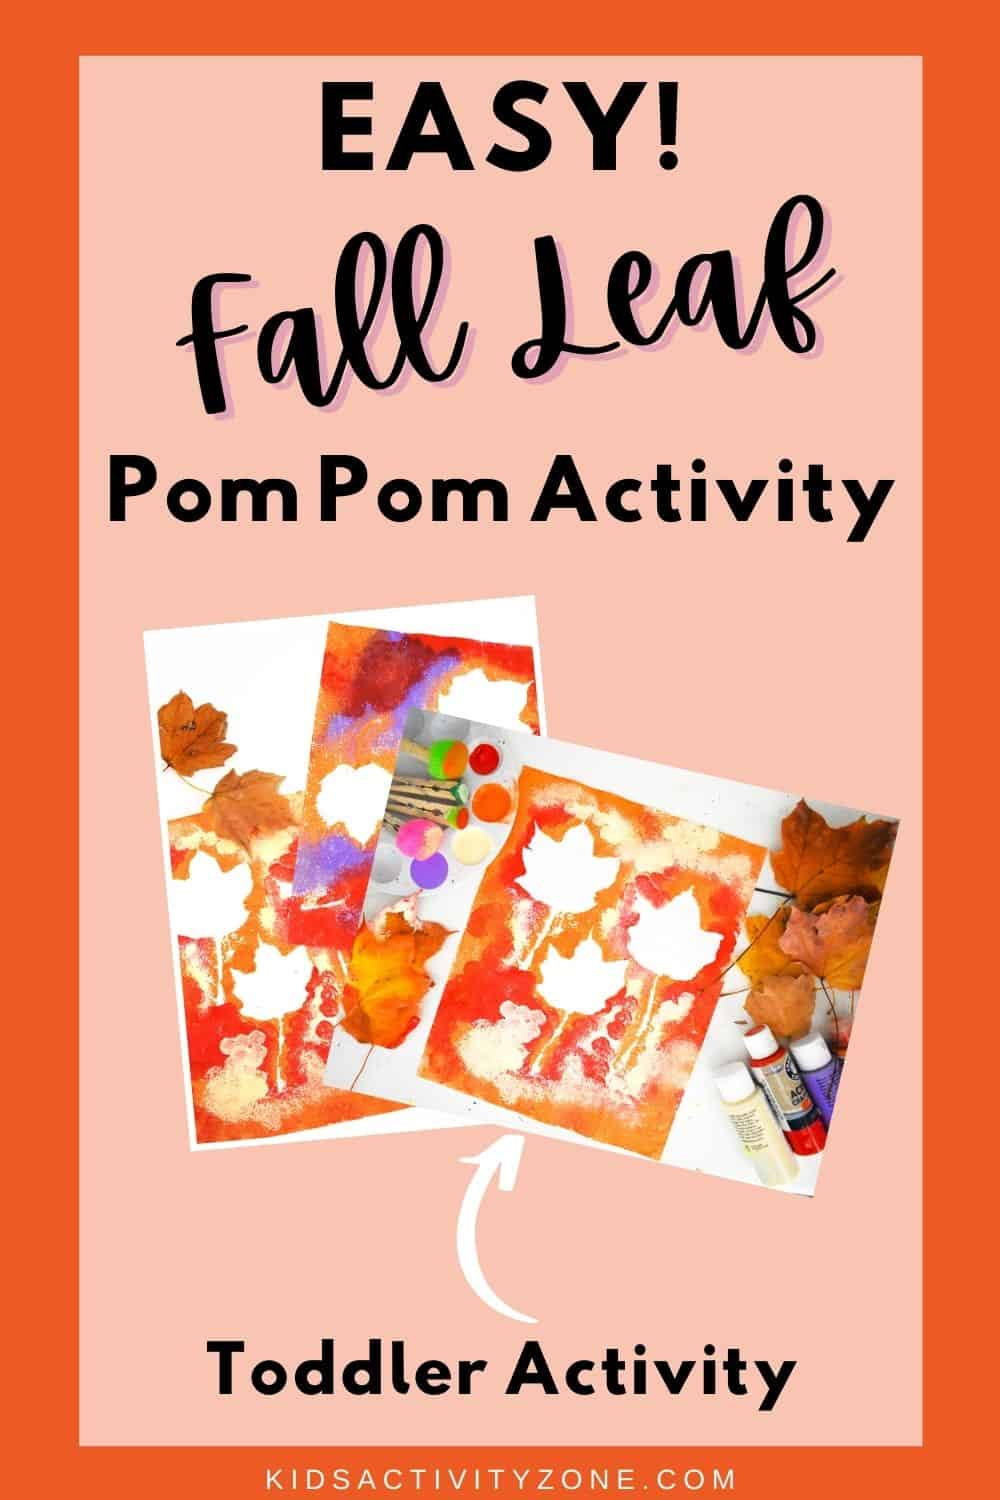 Fall Leaf Pom Pom Painting that's fun for young kids! This is the perfect simple, easy craft for toddlers, preschoolers and young children. This fall art project requires minimal supplies and time.